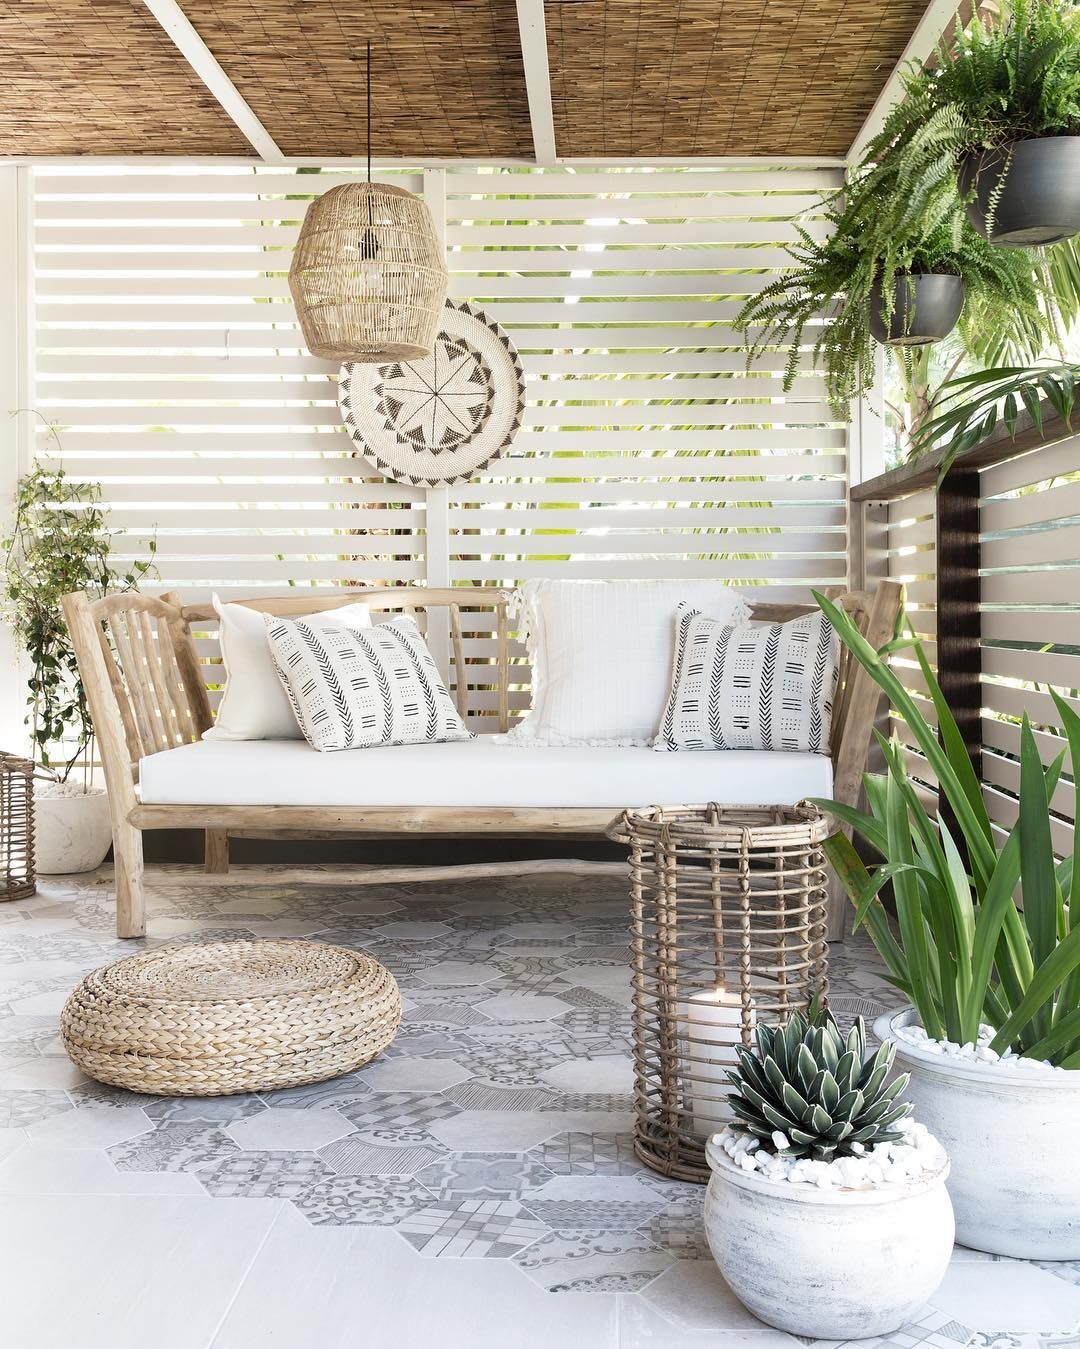 We have been having the most perfect days here on the sunshine coast perfect outdoor weather and this space is just👌to relax unwind and